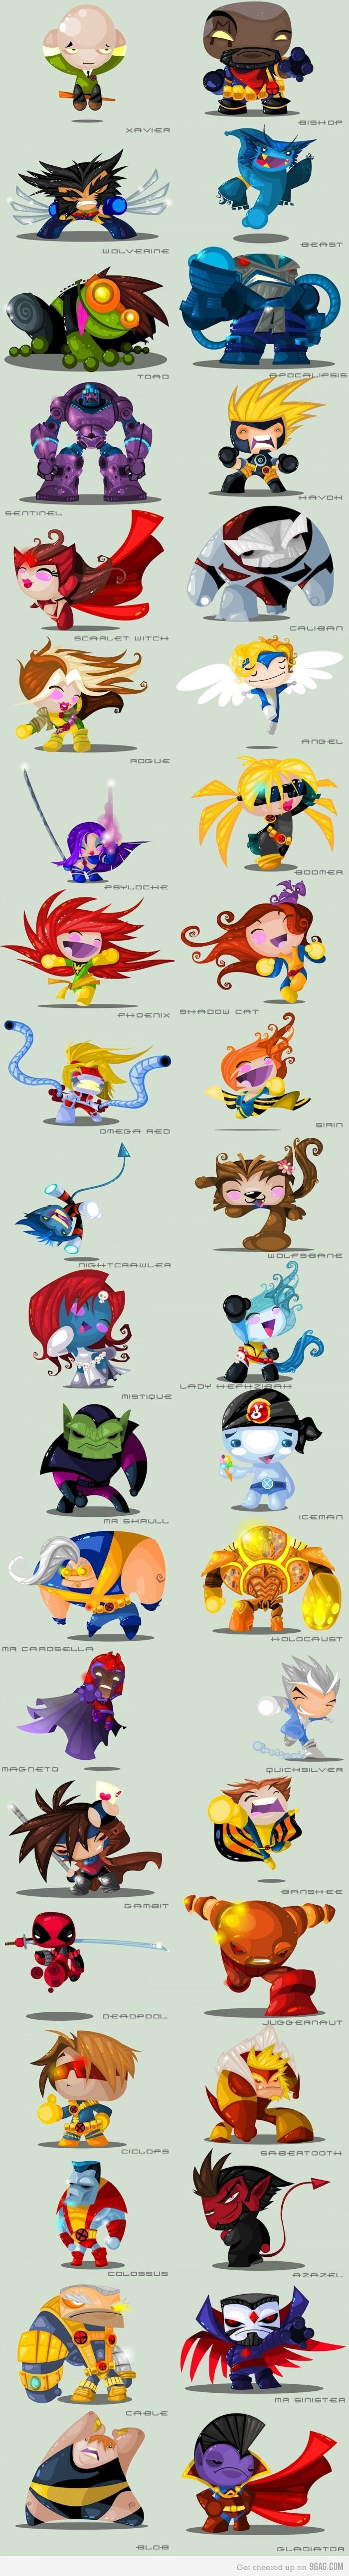 X-men - So cute! Even the Toad. But it's nice to see characters like Boomer and Wolfsbane!